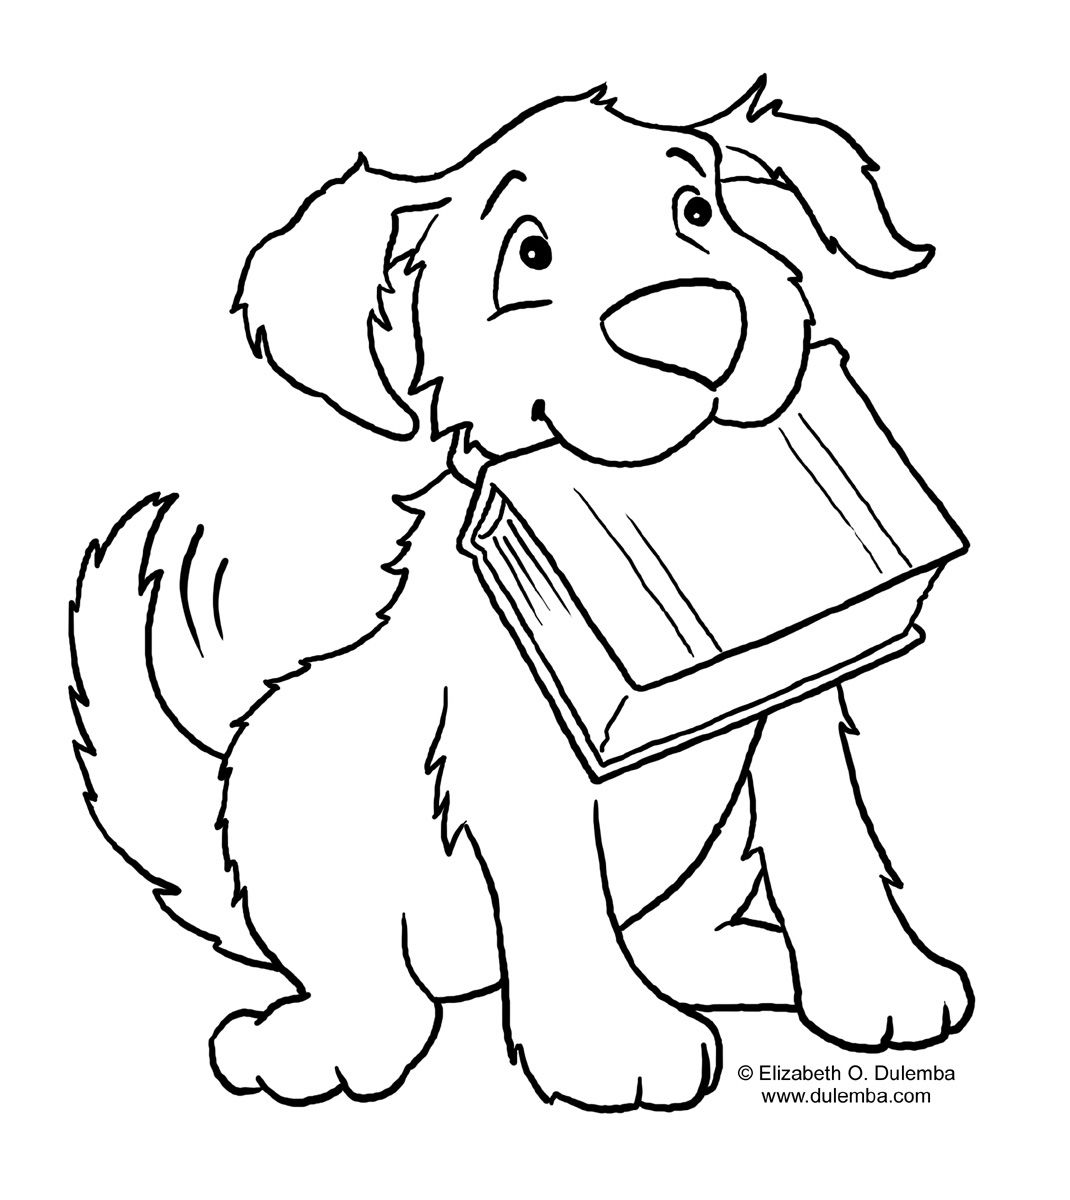 Childrens online colouring book - Dogs Printable Coloring Pages For Kids Find On Coloring Book Of Coloring Pages